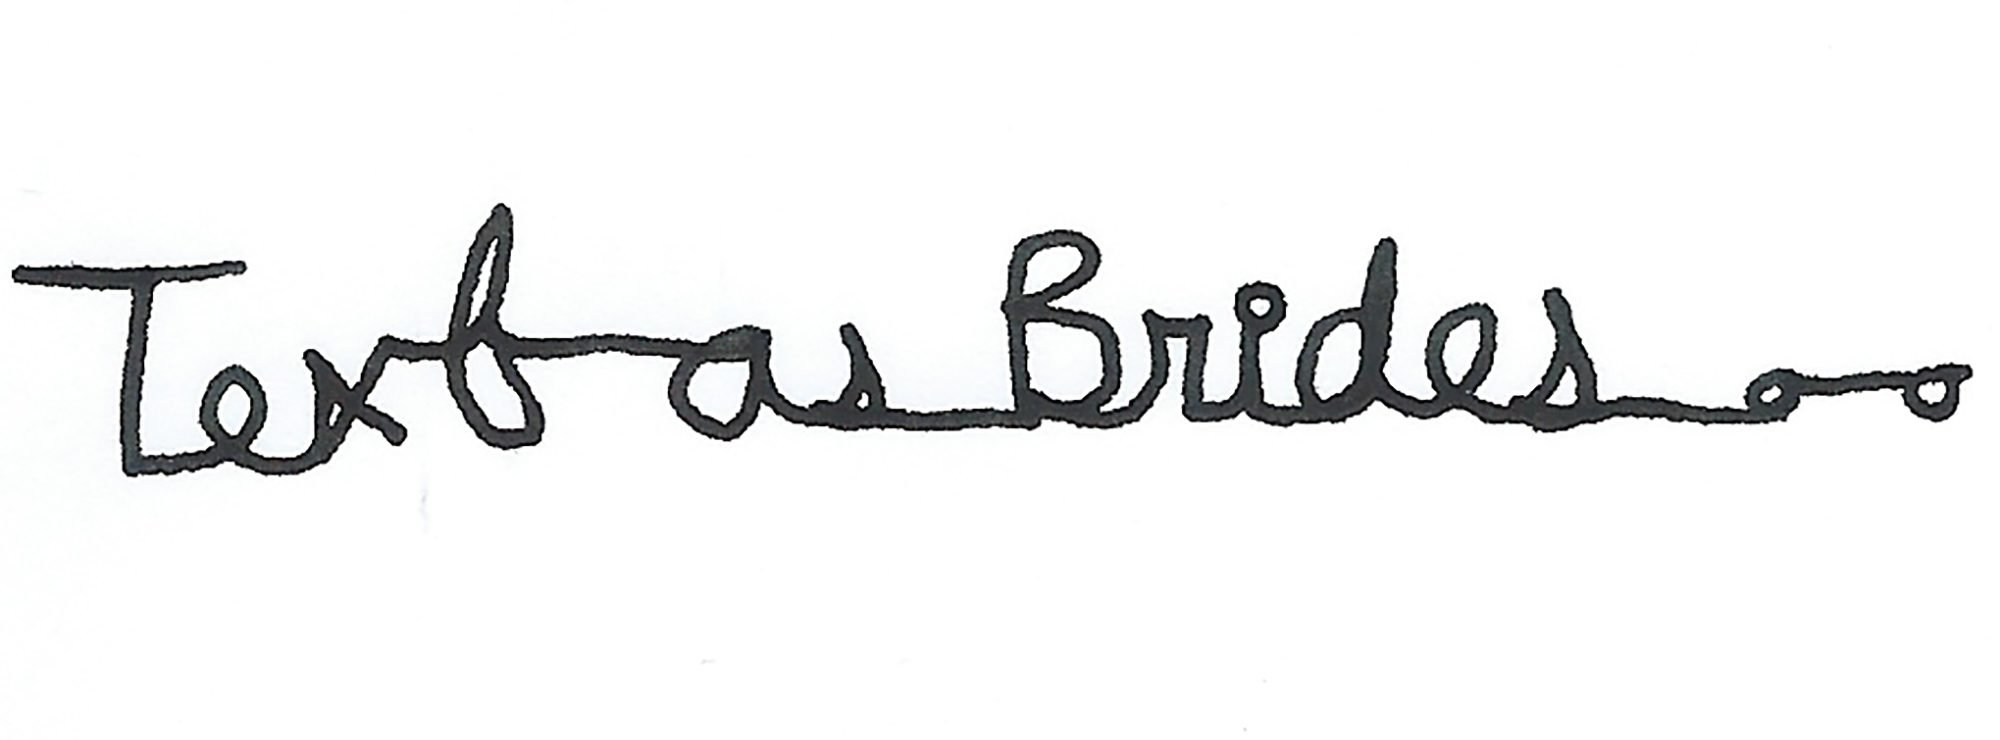 Handwritten text as brides